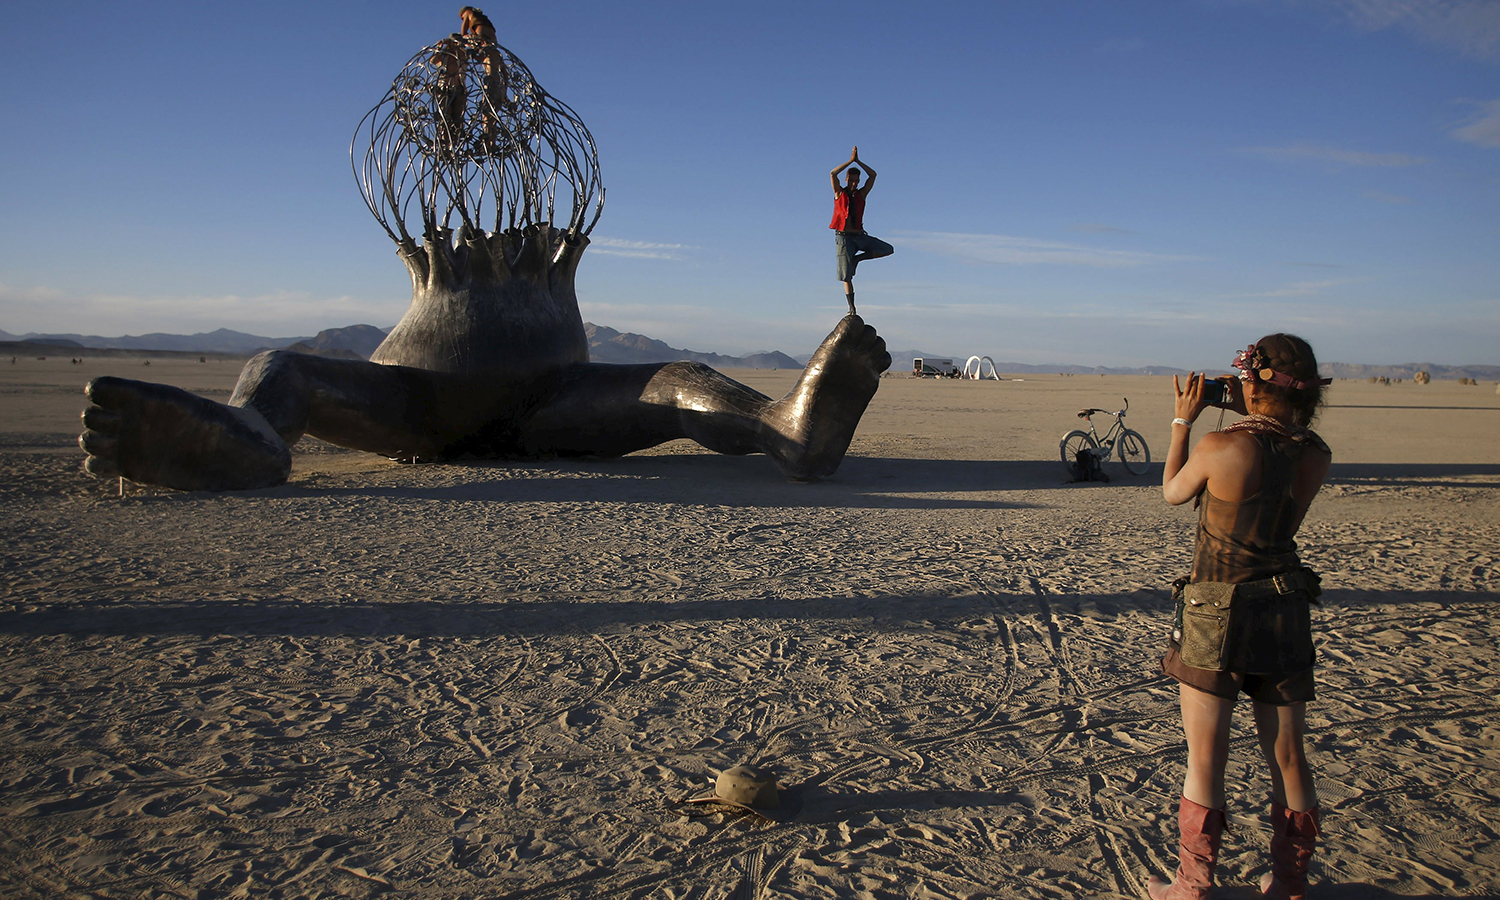 """Kenyon Acton (R) takes a photo of Ian Bennett posing on an art installation during the Burning Man 2015 """"Carnival of Mirrors"""" arts and music festival in the Black Rock Desert of Nevada, September 6, 2015. — Reuters"""